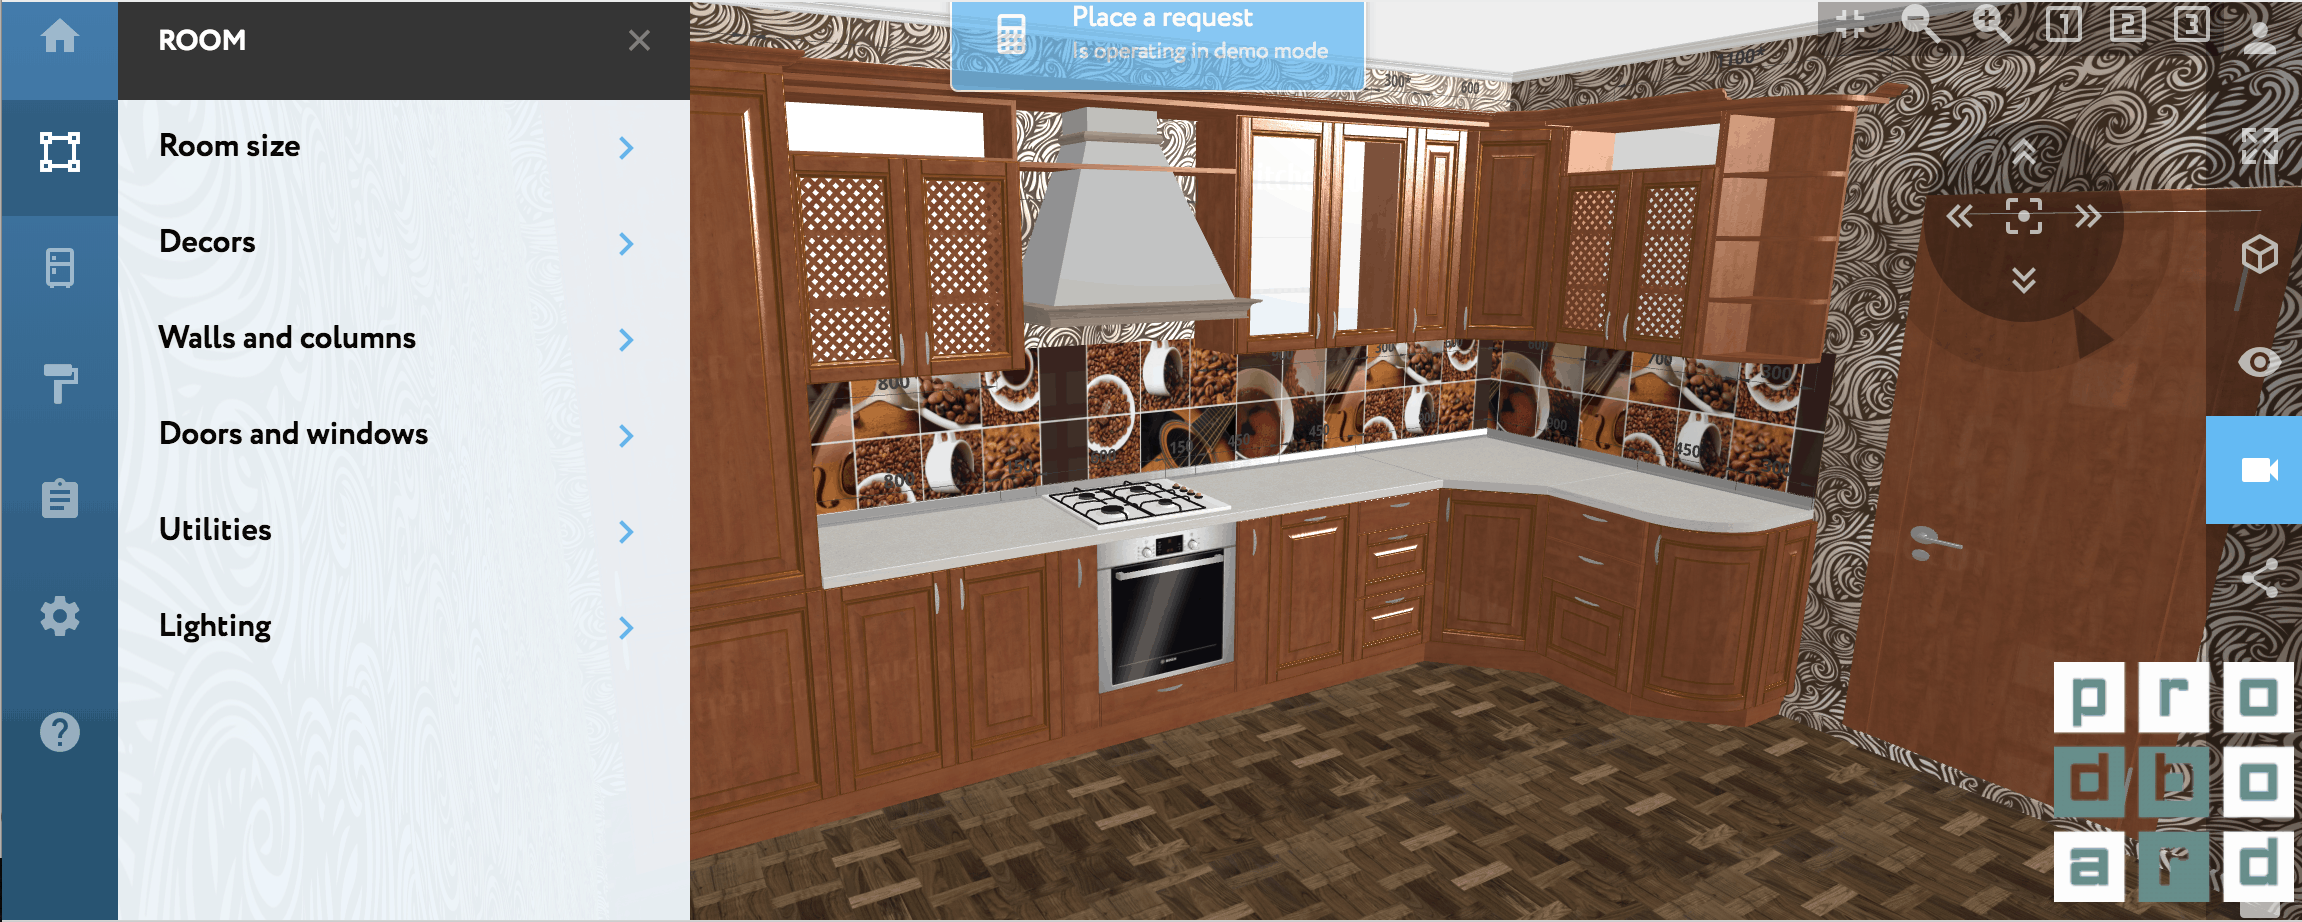 16 best online kitchen design software options in 2018 free paid Kitcad kitchen design software